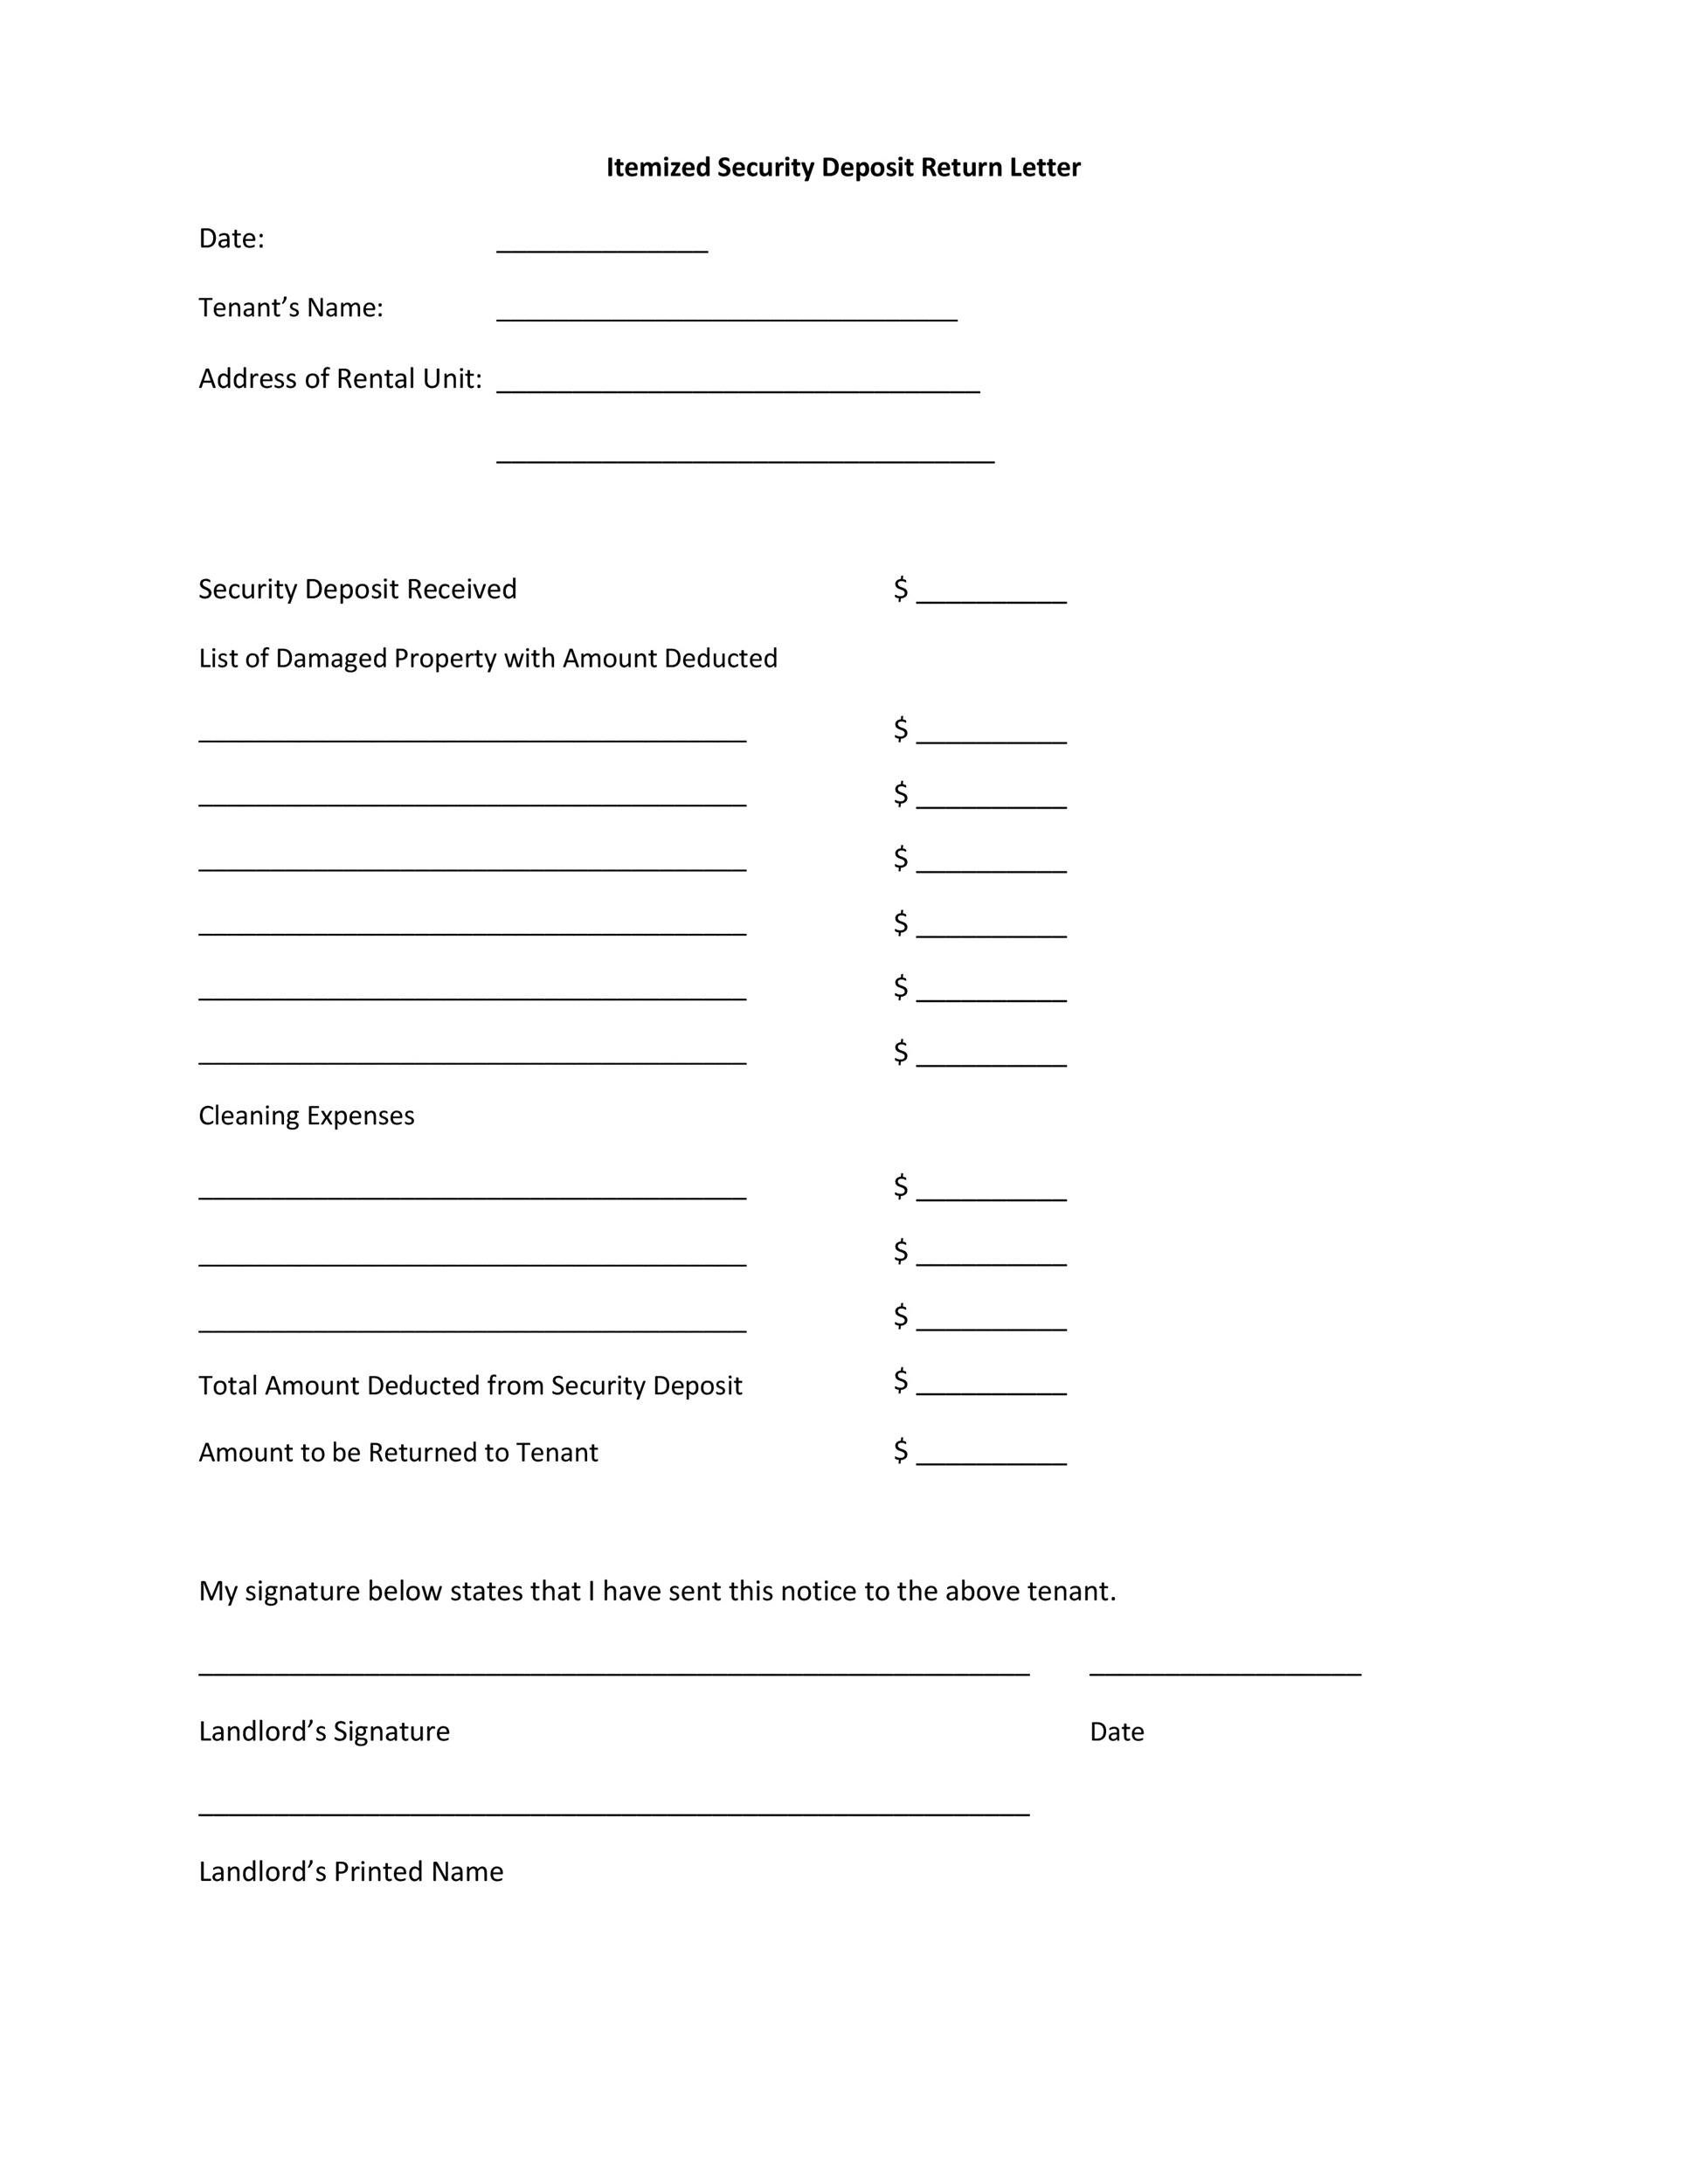 Deposit deduction form | lease agreement free printable, being a.